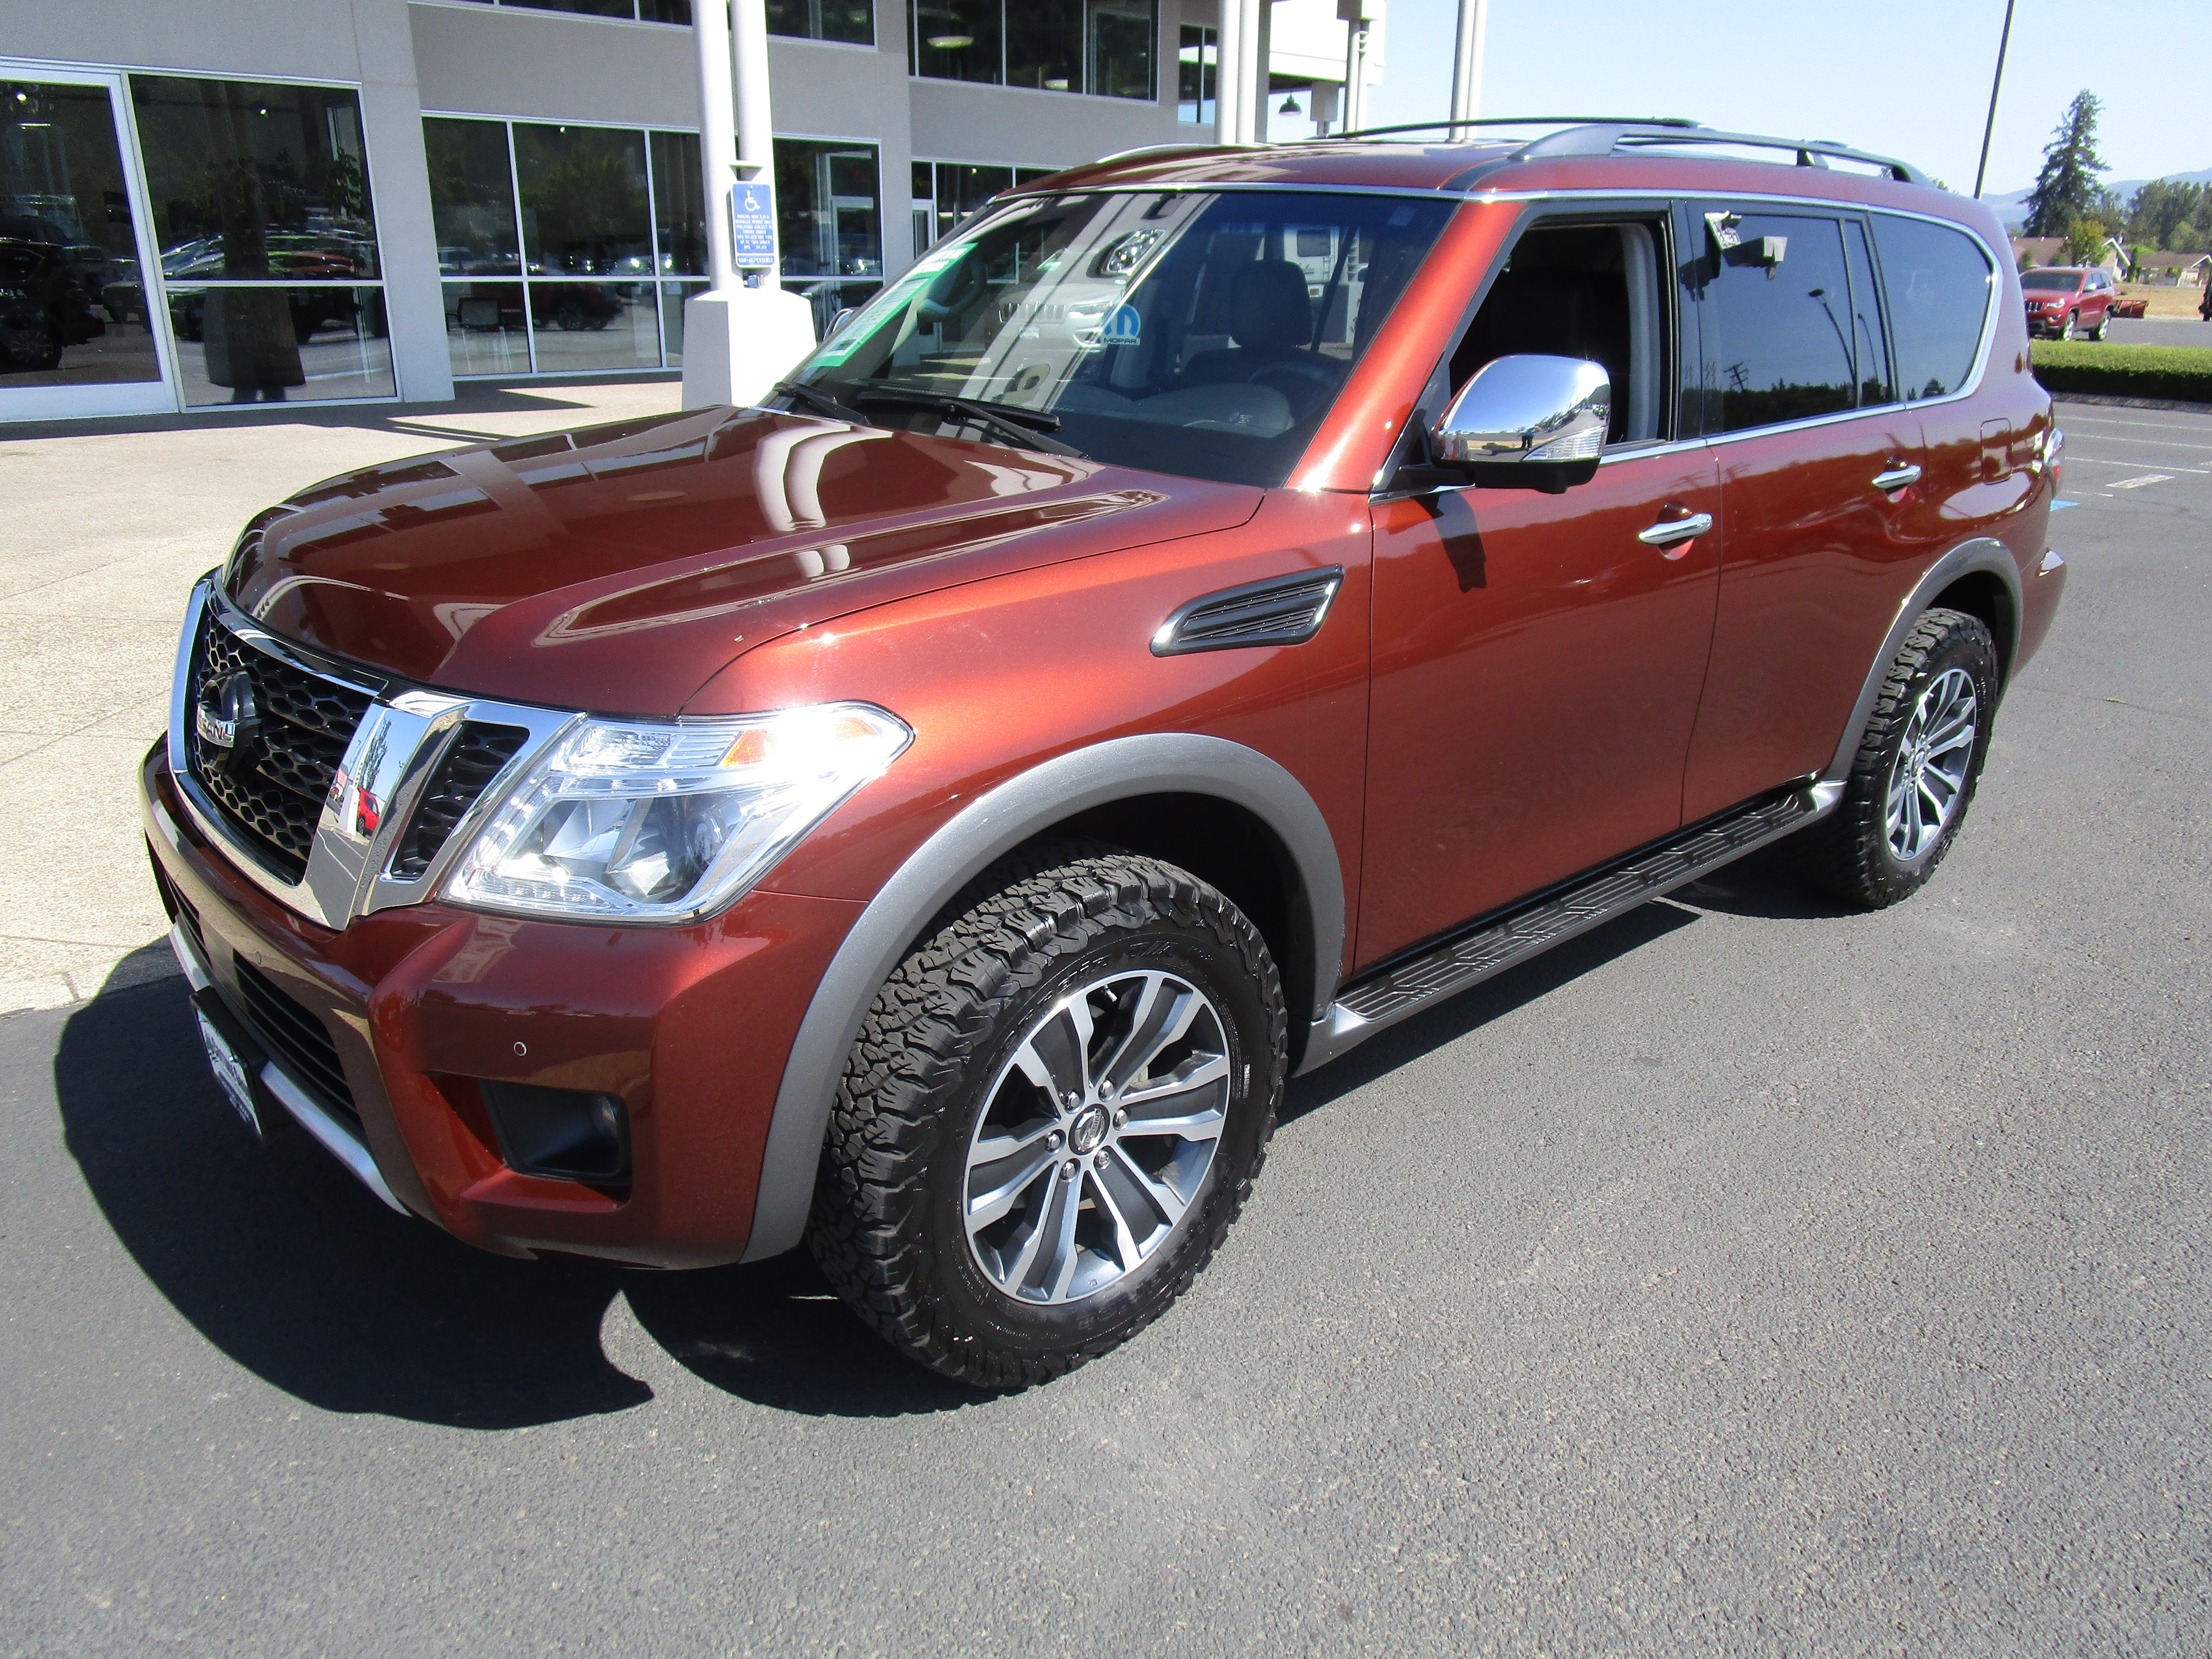 2017 Nissan Armada Configurations >> Used 2017 Nissan Armada For Sale In Cottage Grove Or Near Springfield Or Vin Jn8ay2nc8h9511253